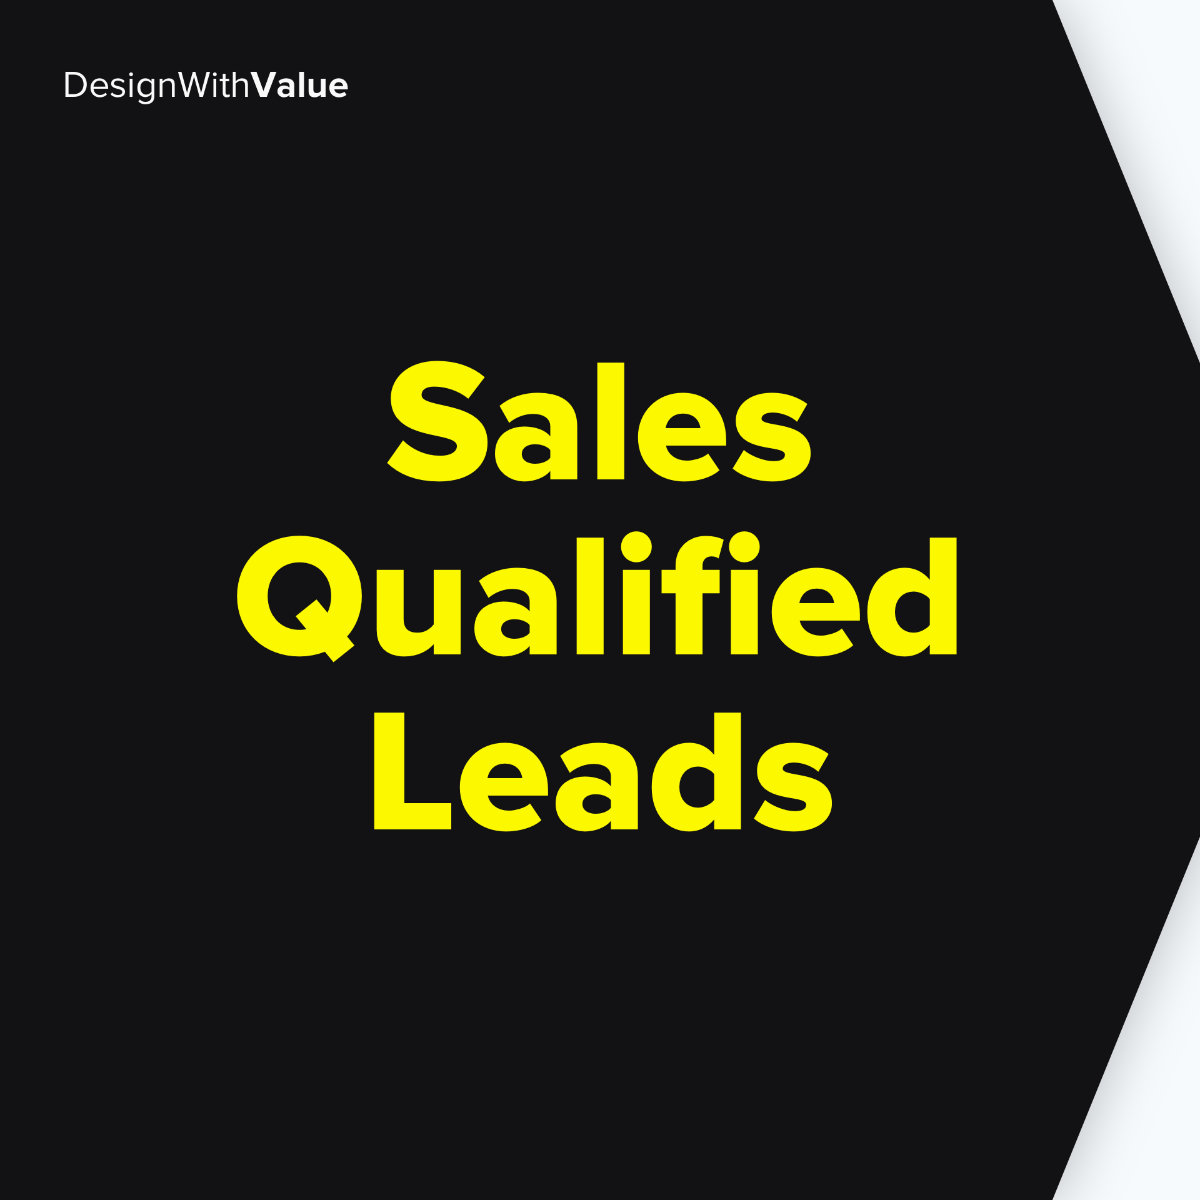 Sales qualified leads means